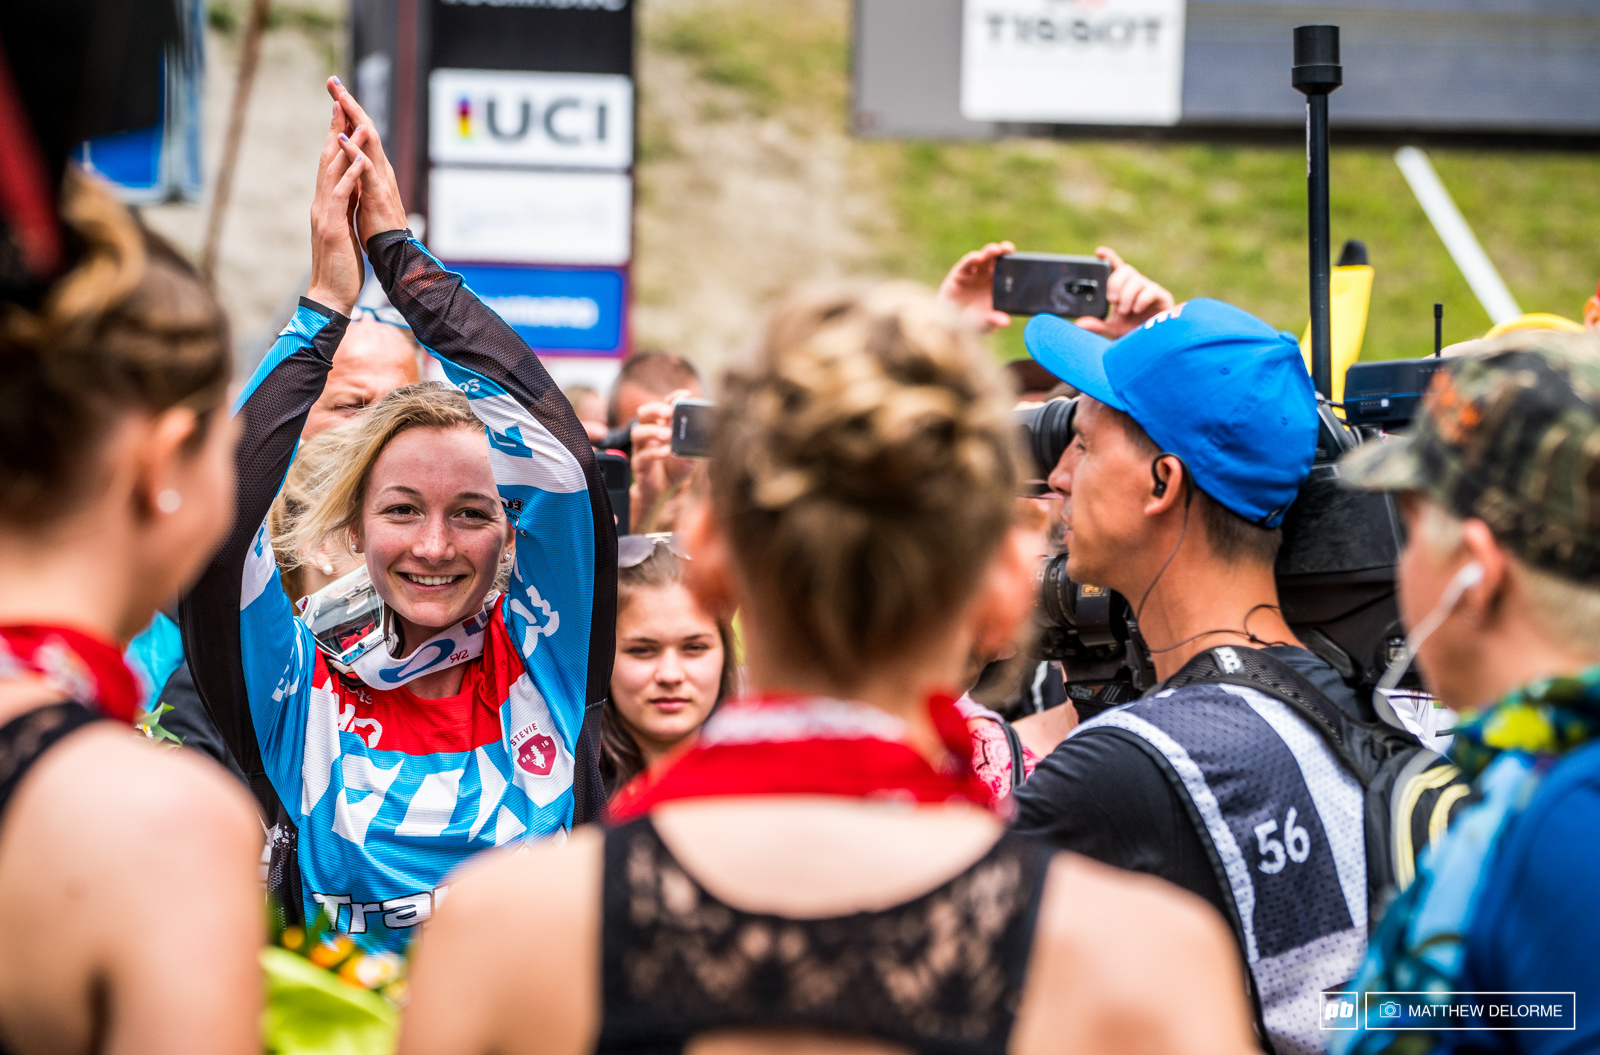 Tahnee Seagrave has reason to celebrate. She took second today and closed the gap on Rachel.